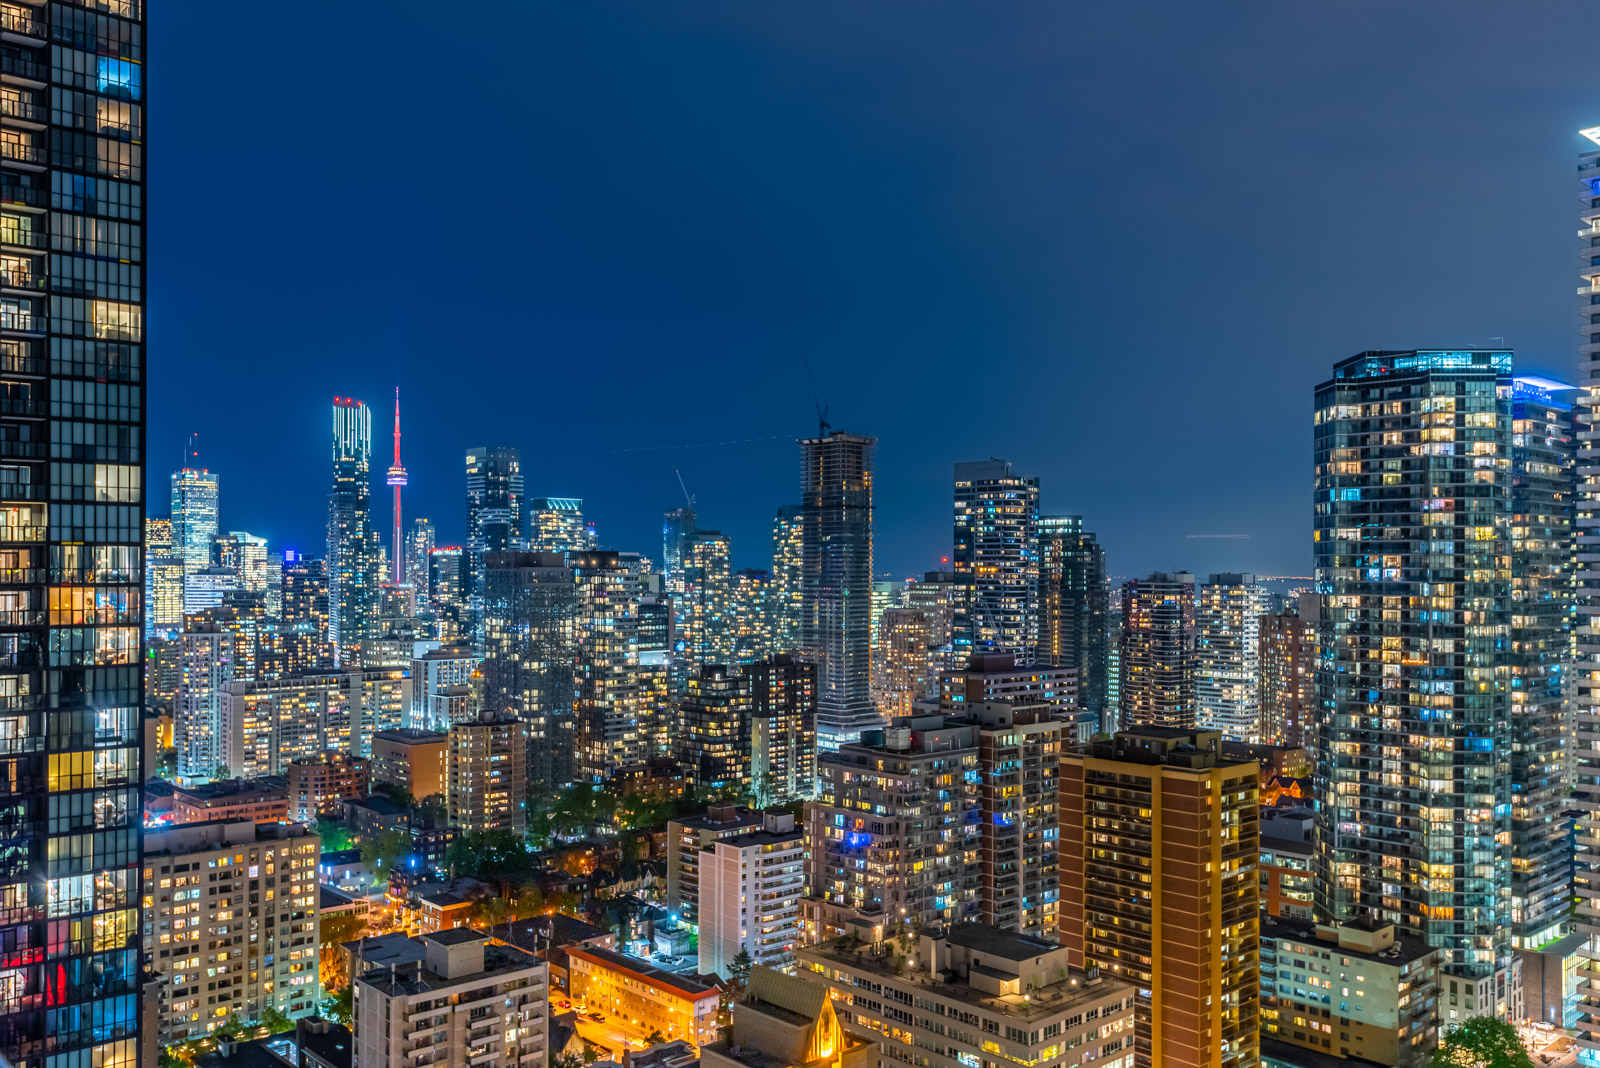 Night view of Toronto from 28 Ted Rogers Way Unit 3609 balcony.